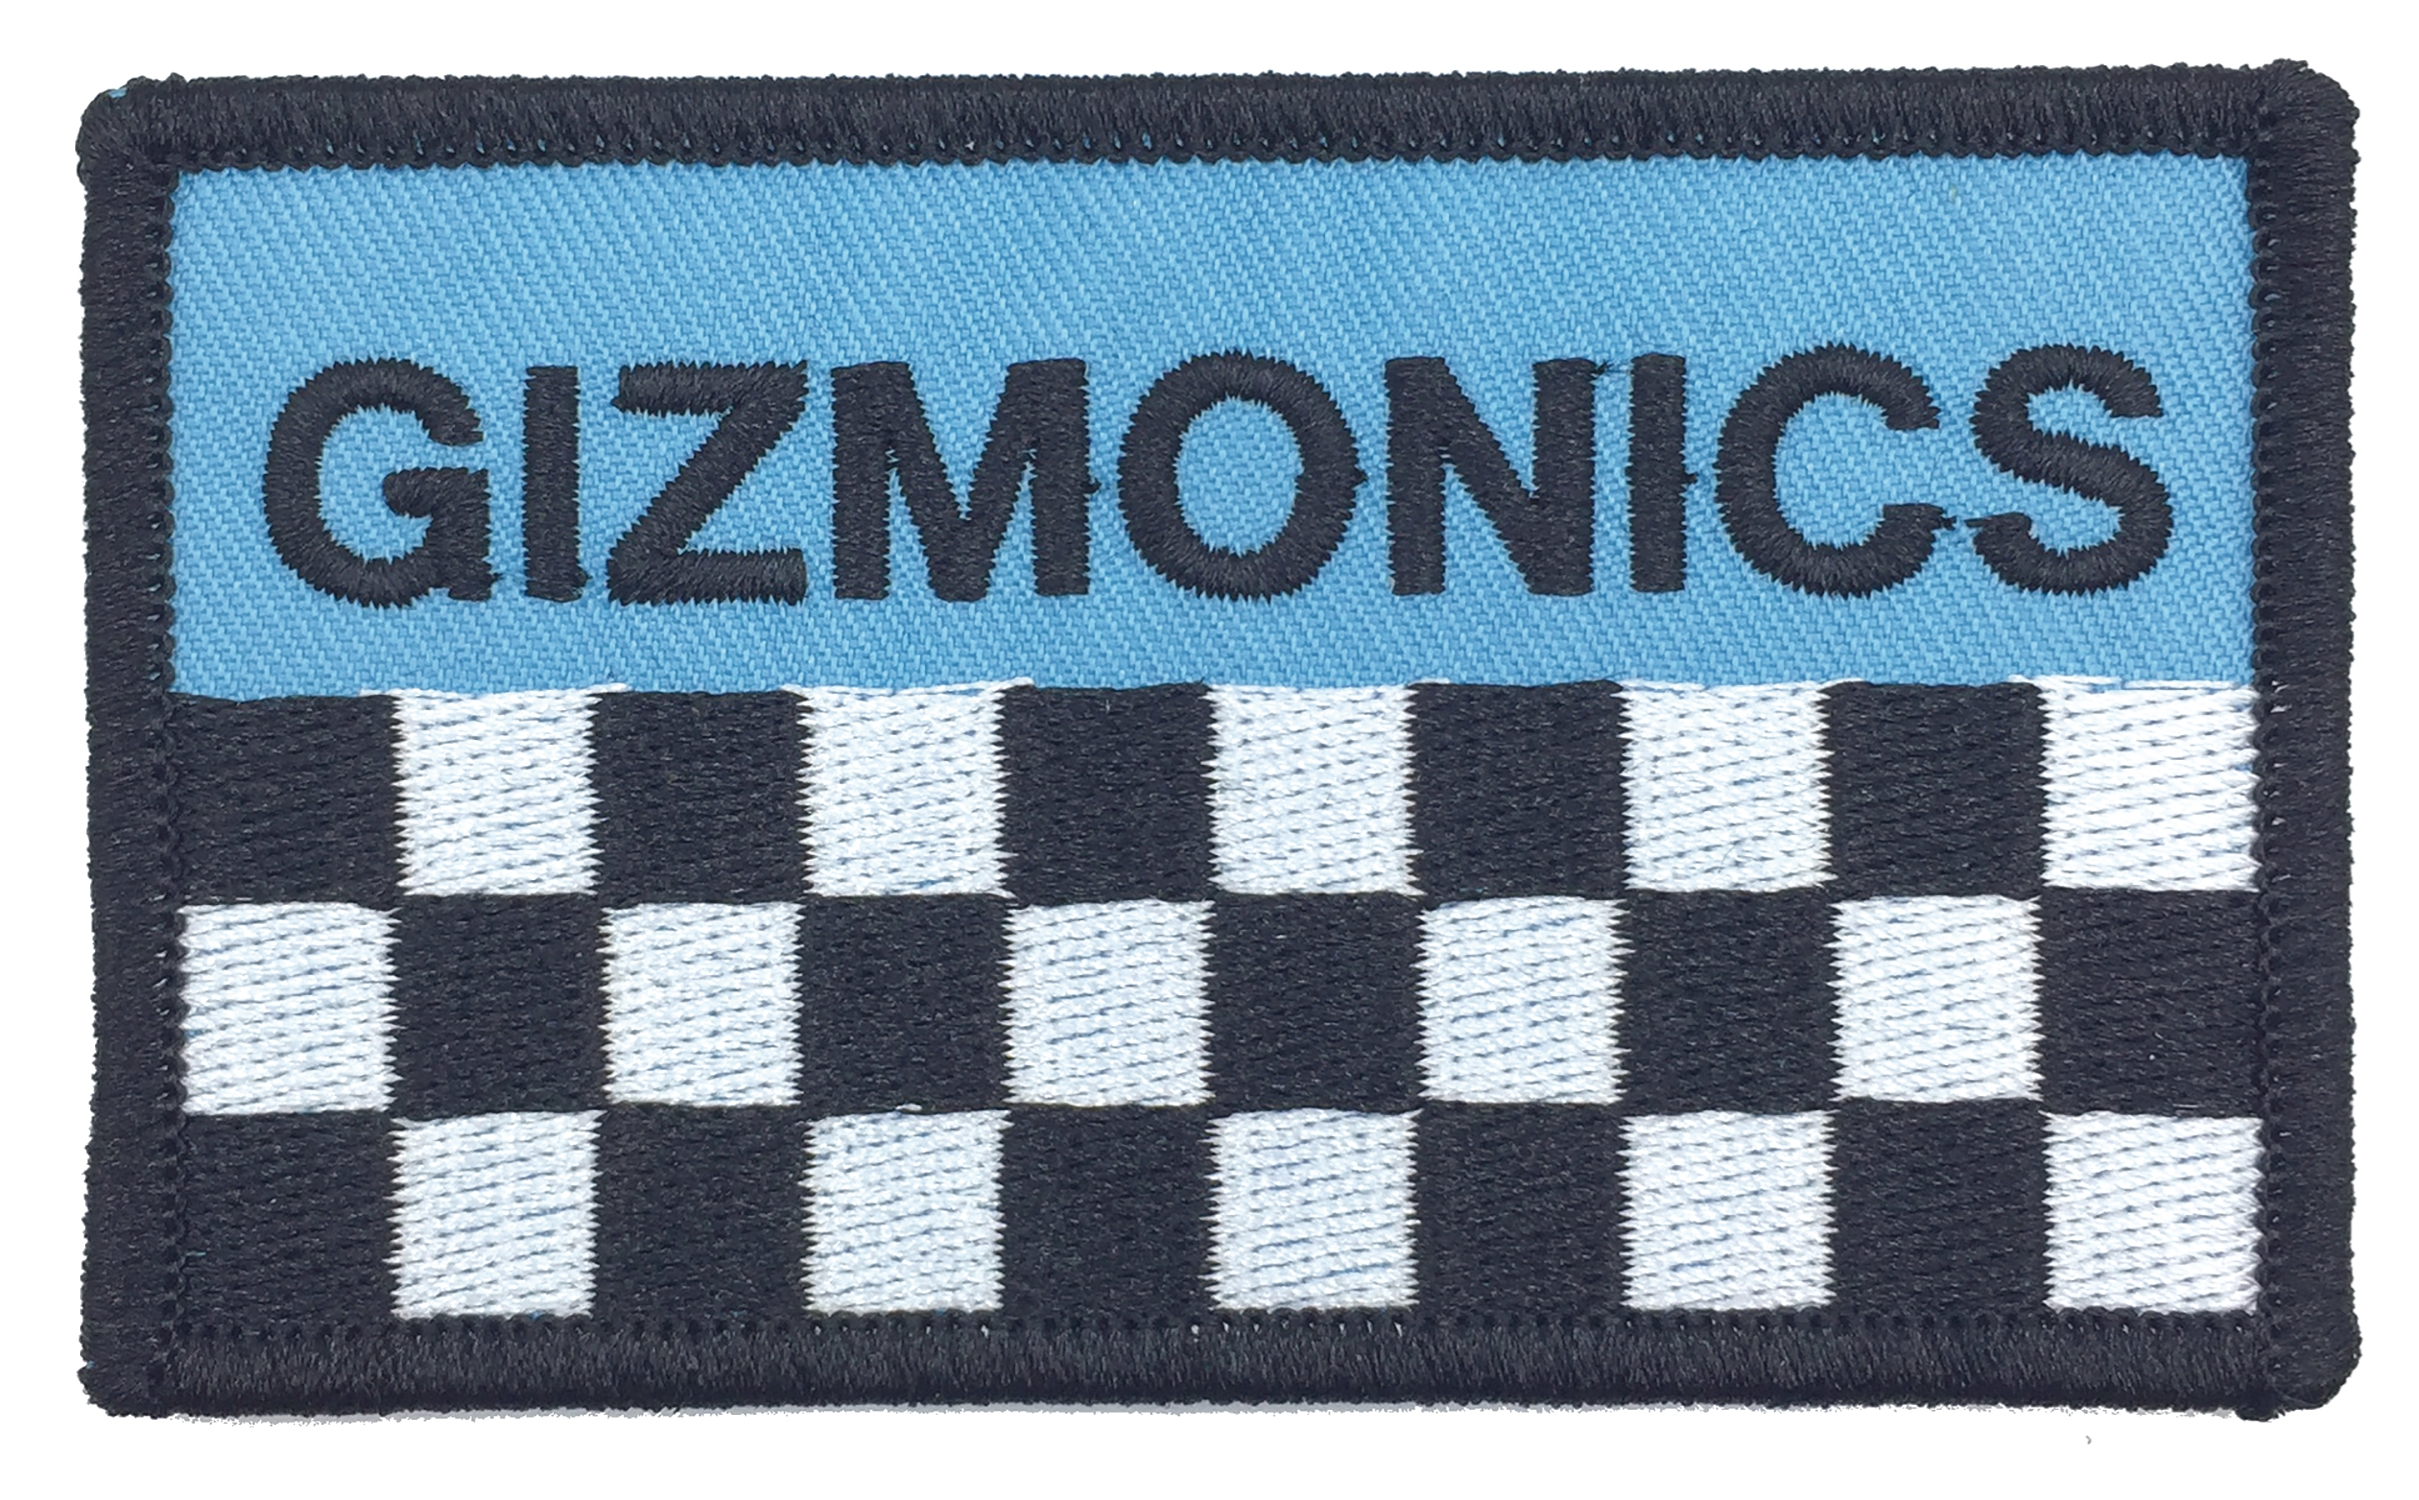 Mystery Science Theater: Gizmonics Patch